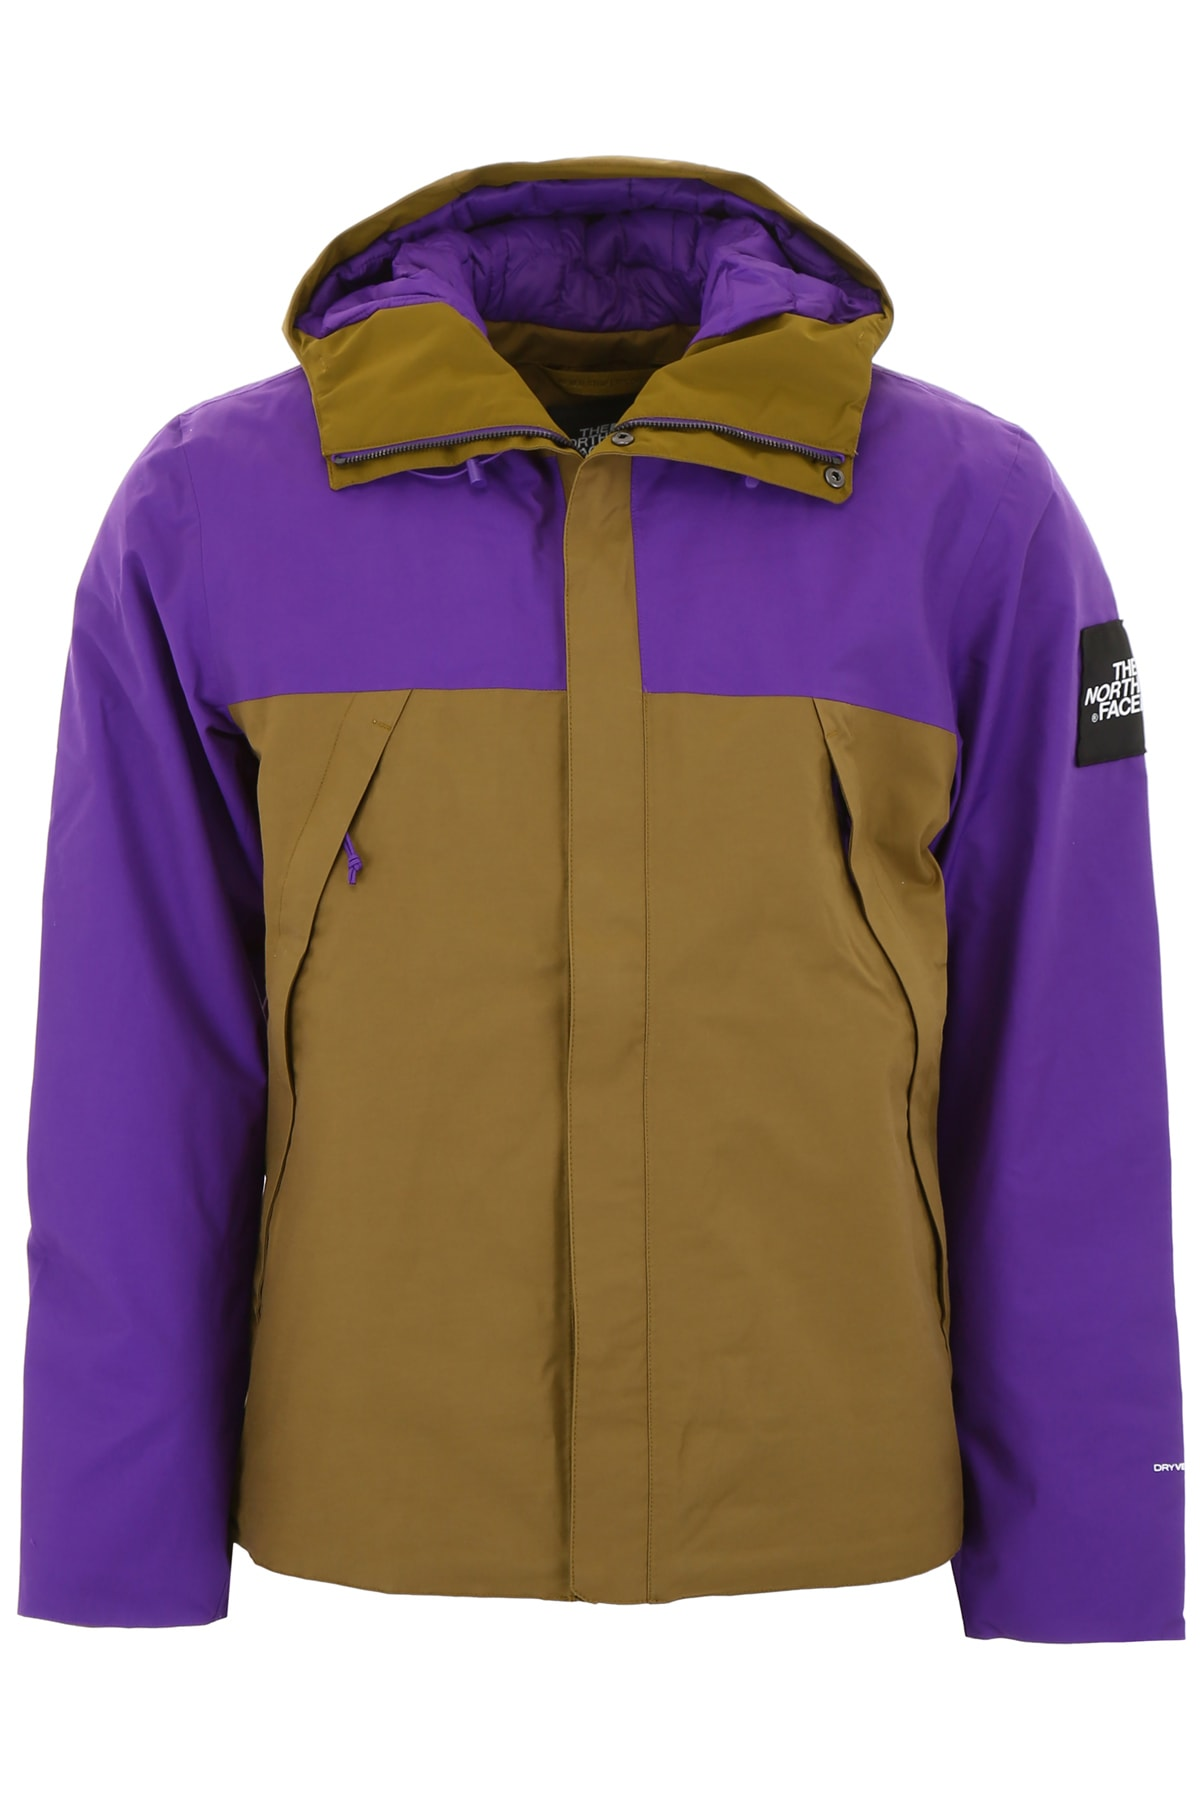 7a84f20c1 The North Face Mountain Thermoball Jacket